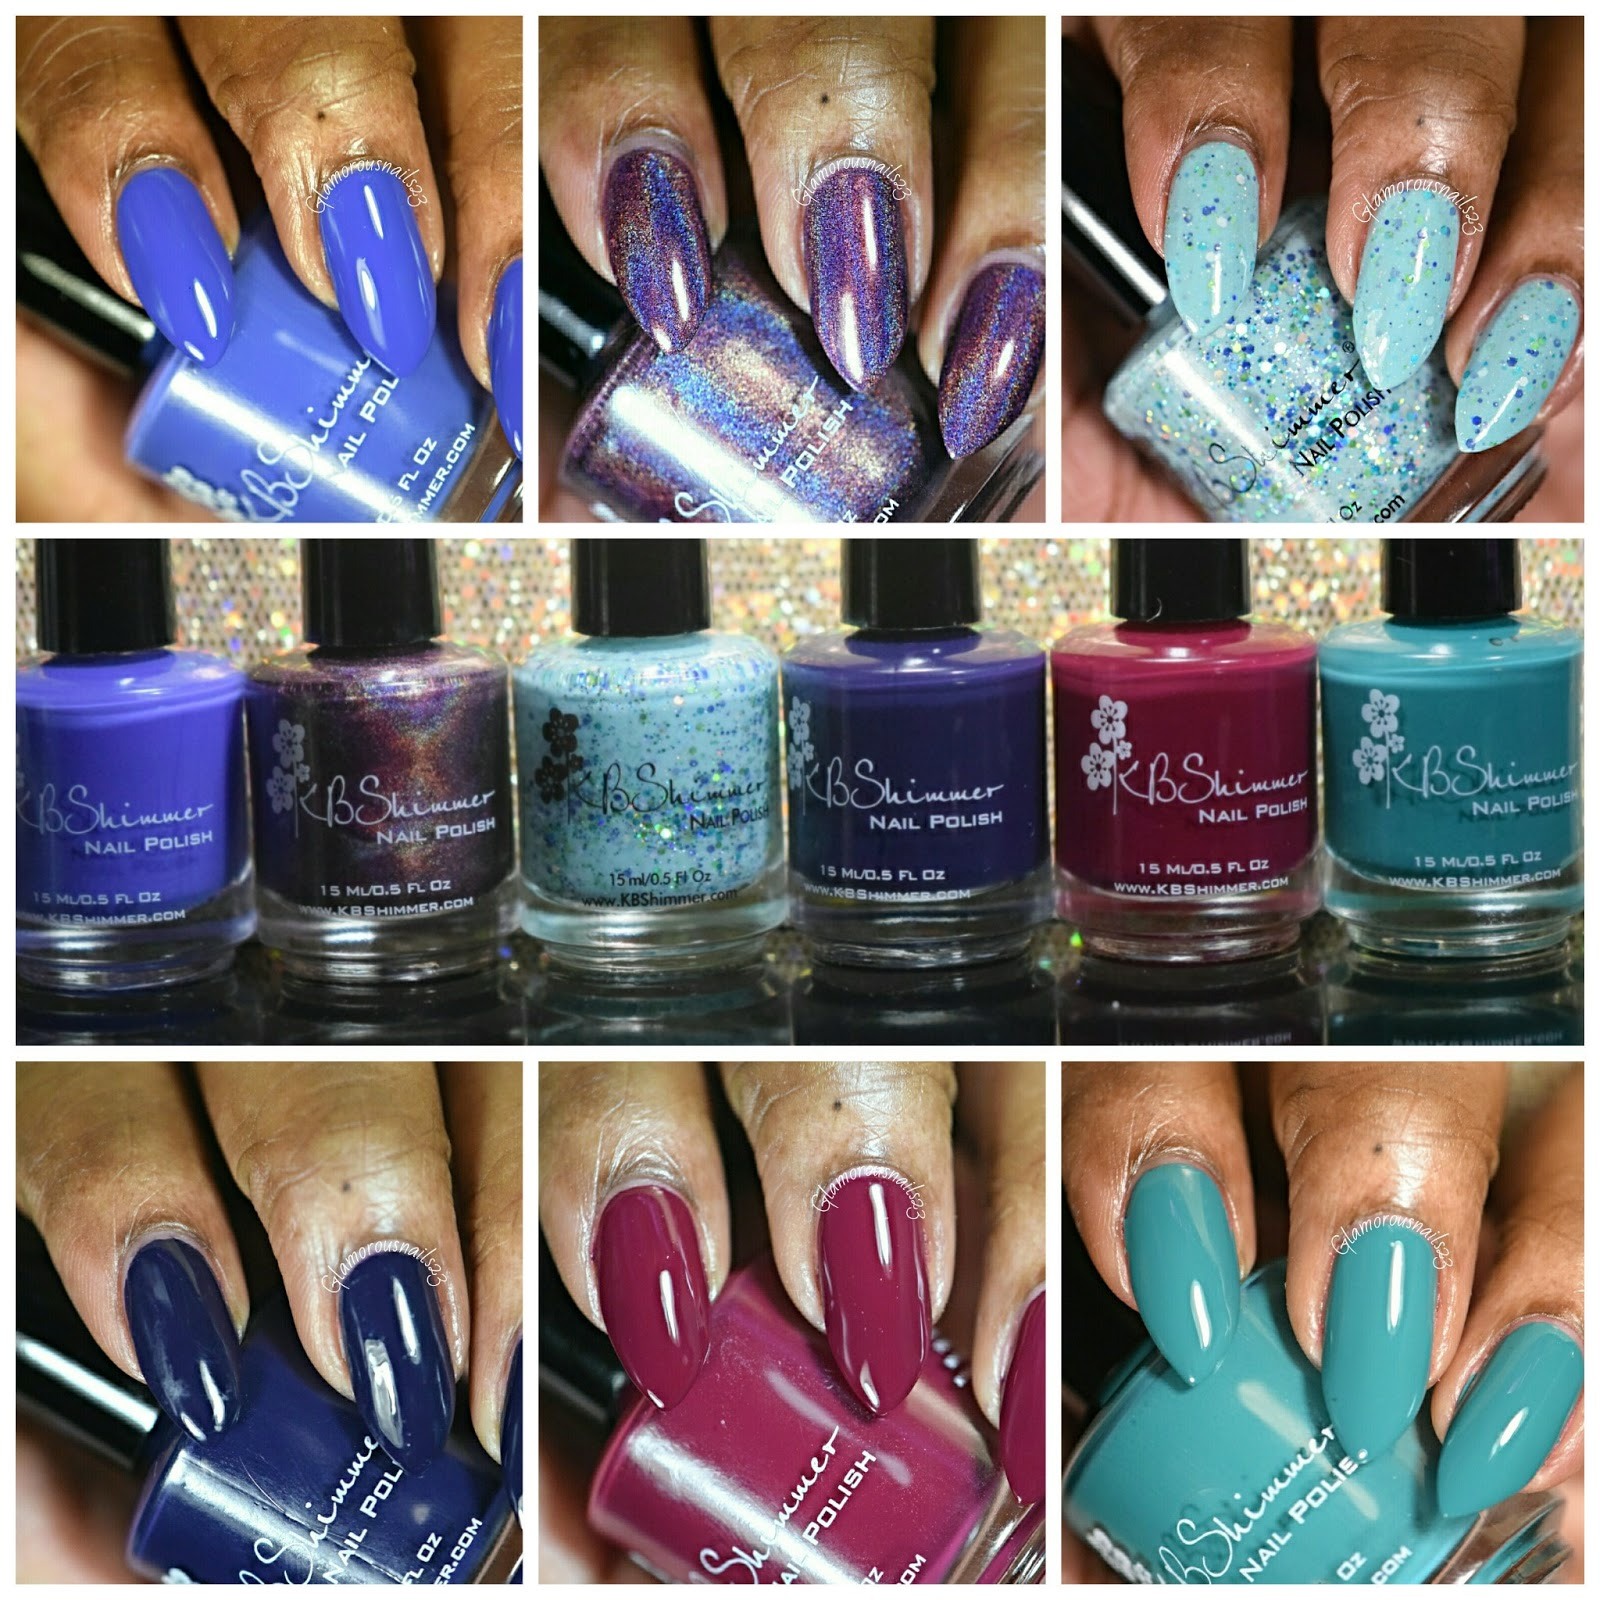 KBShimmer Fall 2015 Collection [My Picks] Swatches & Review ...